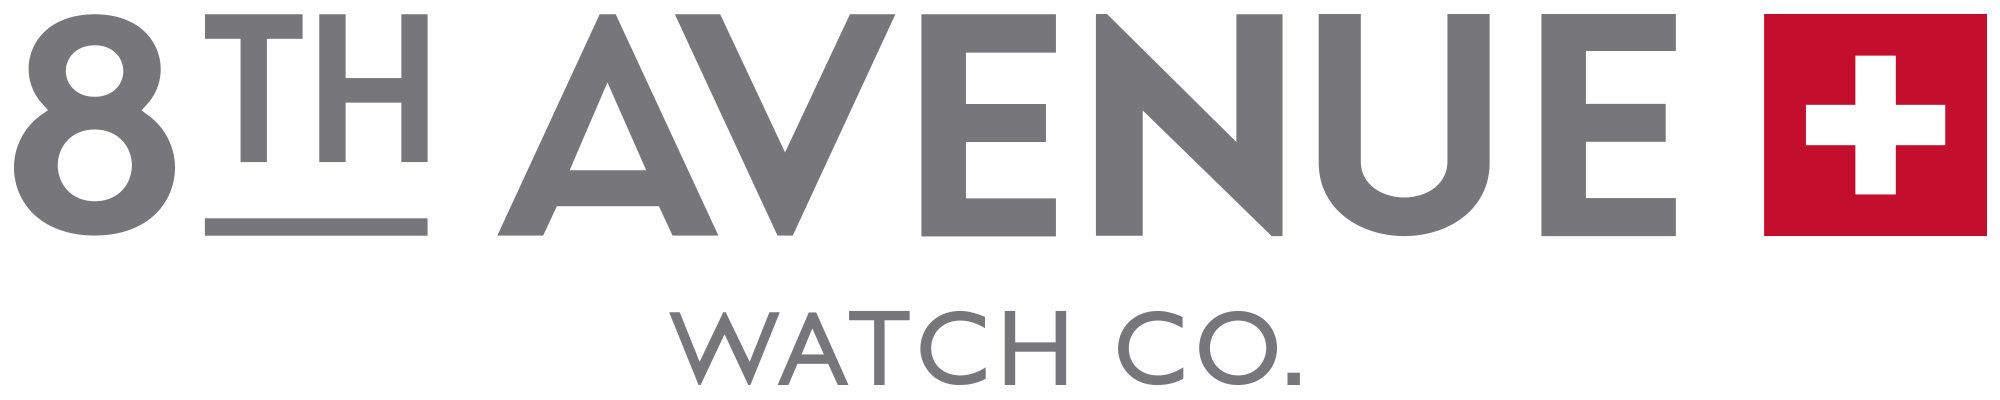 8th Avenue Watch Co (Services) Pty Ltd